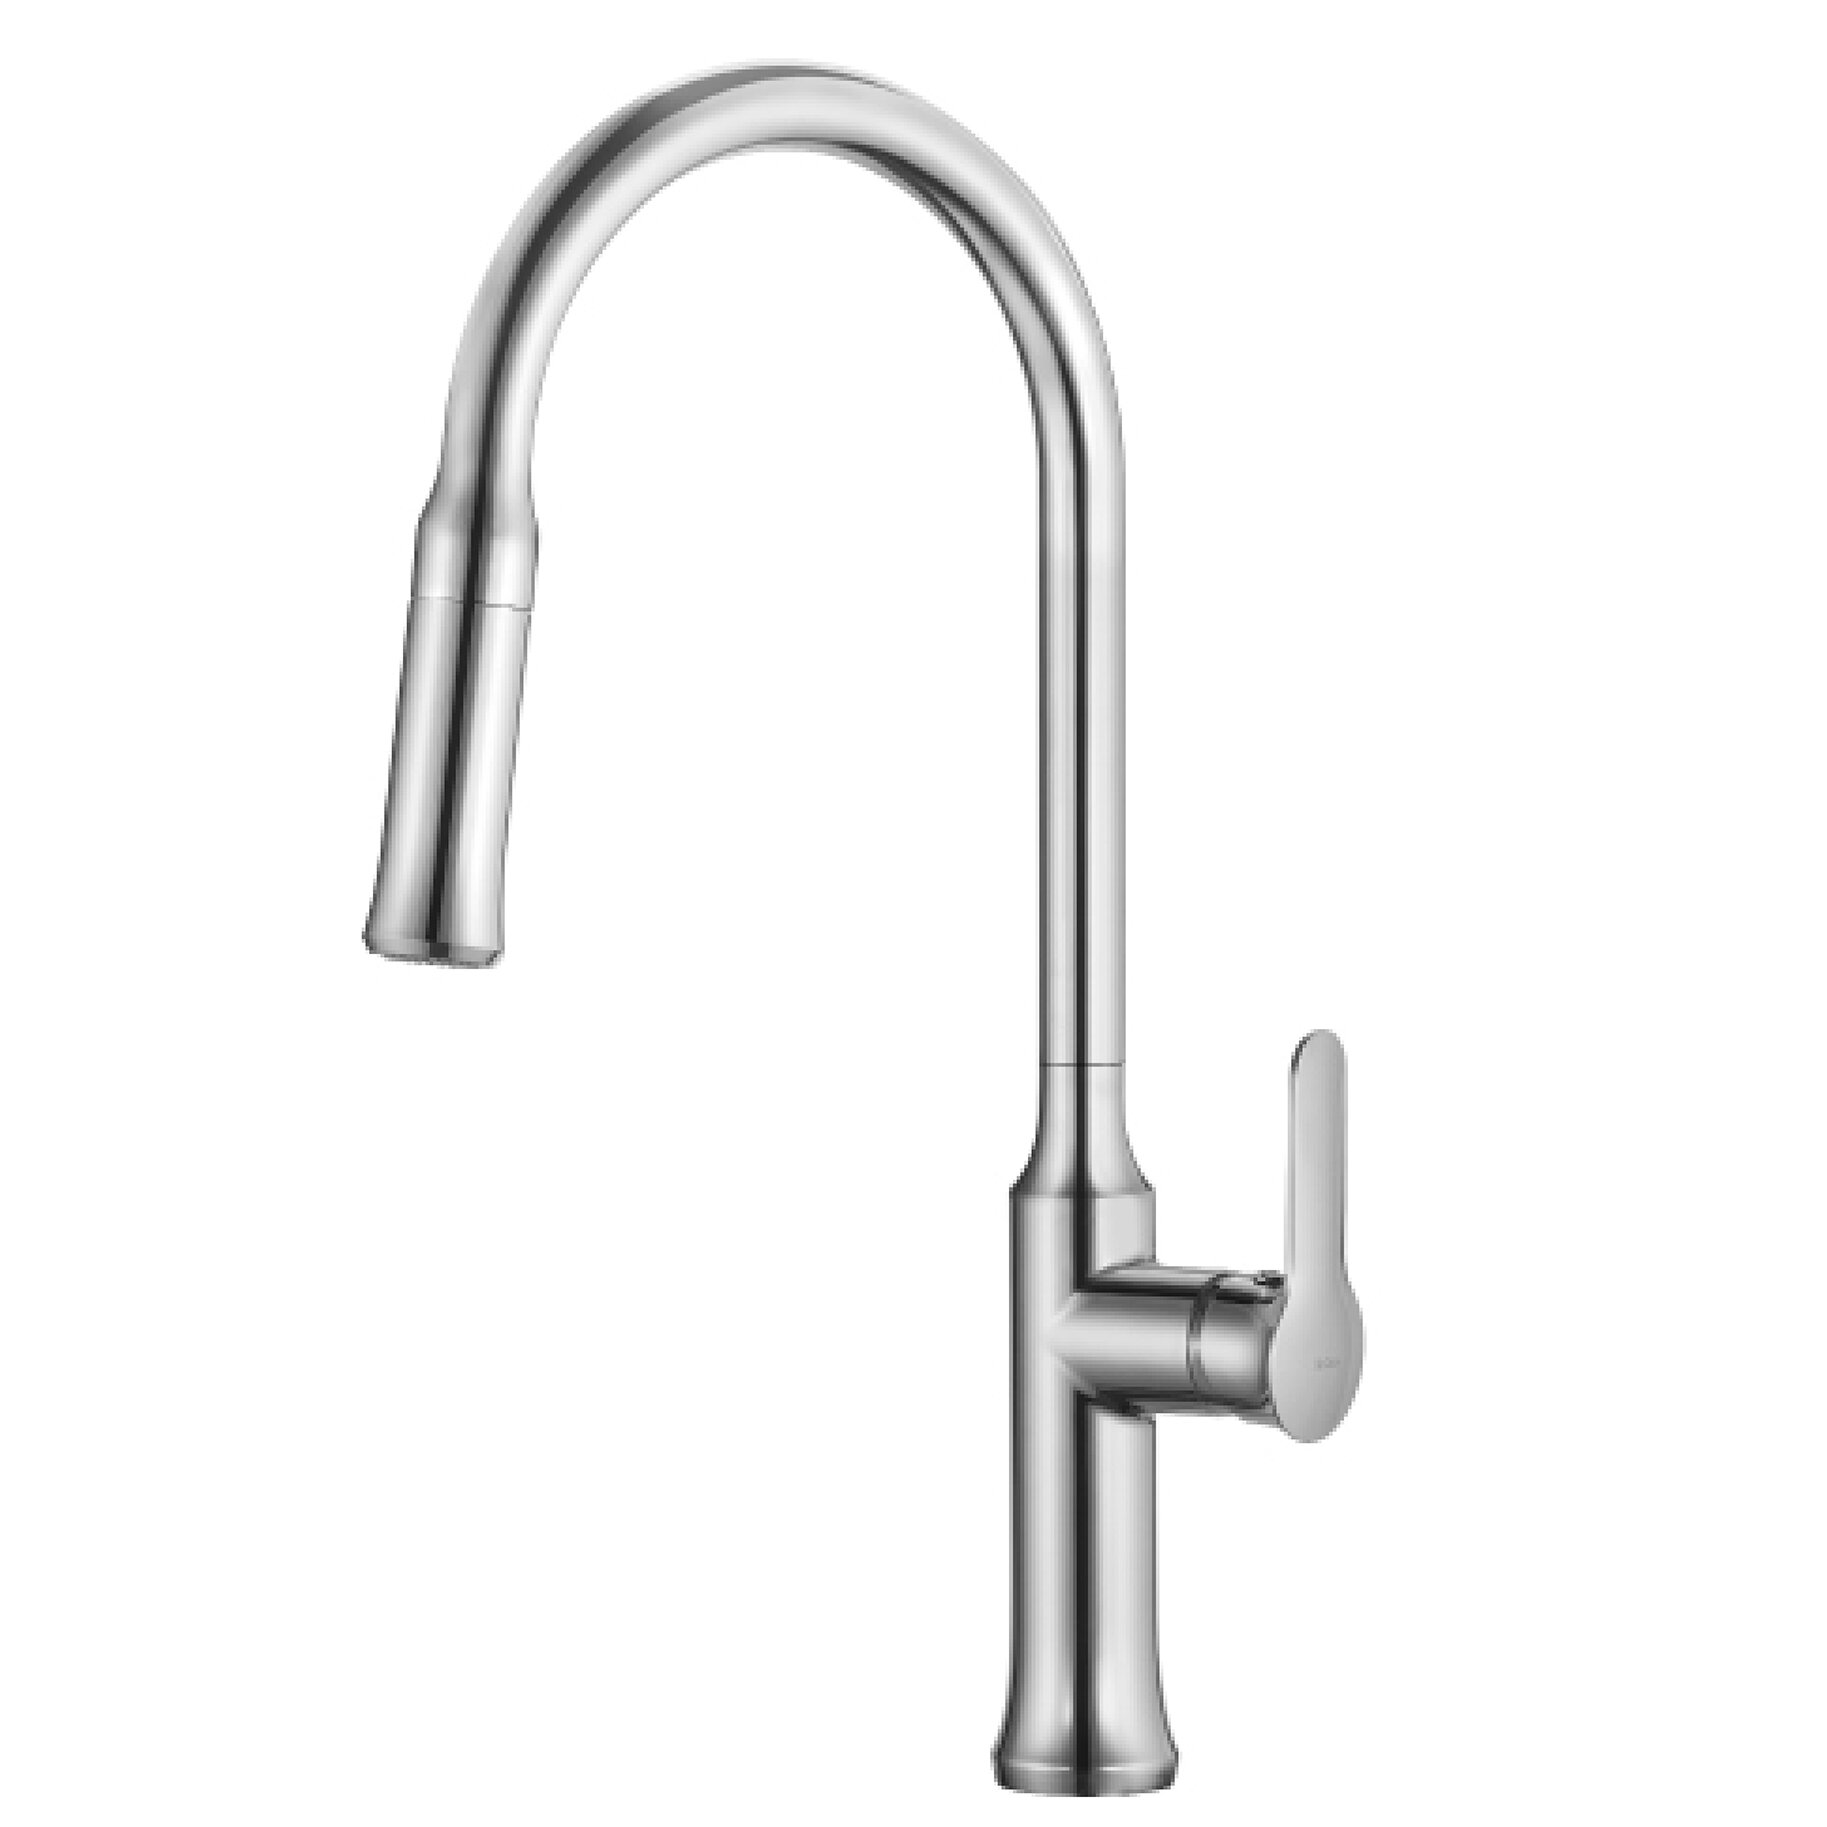 Kraus Bathroom Faucets : Kraus Nola? Single Lever Pull Down Kitchen Faucet & Reviews ...